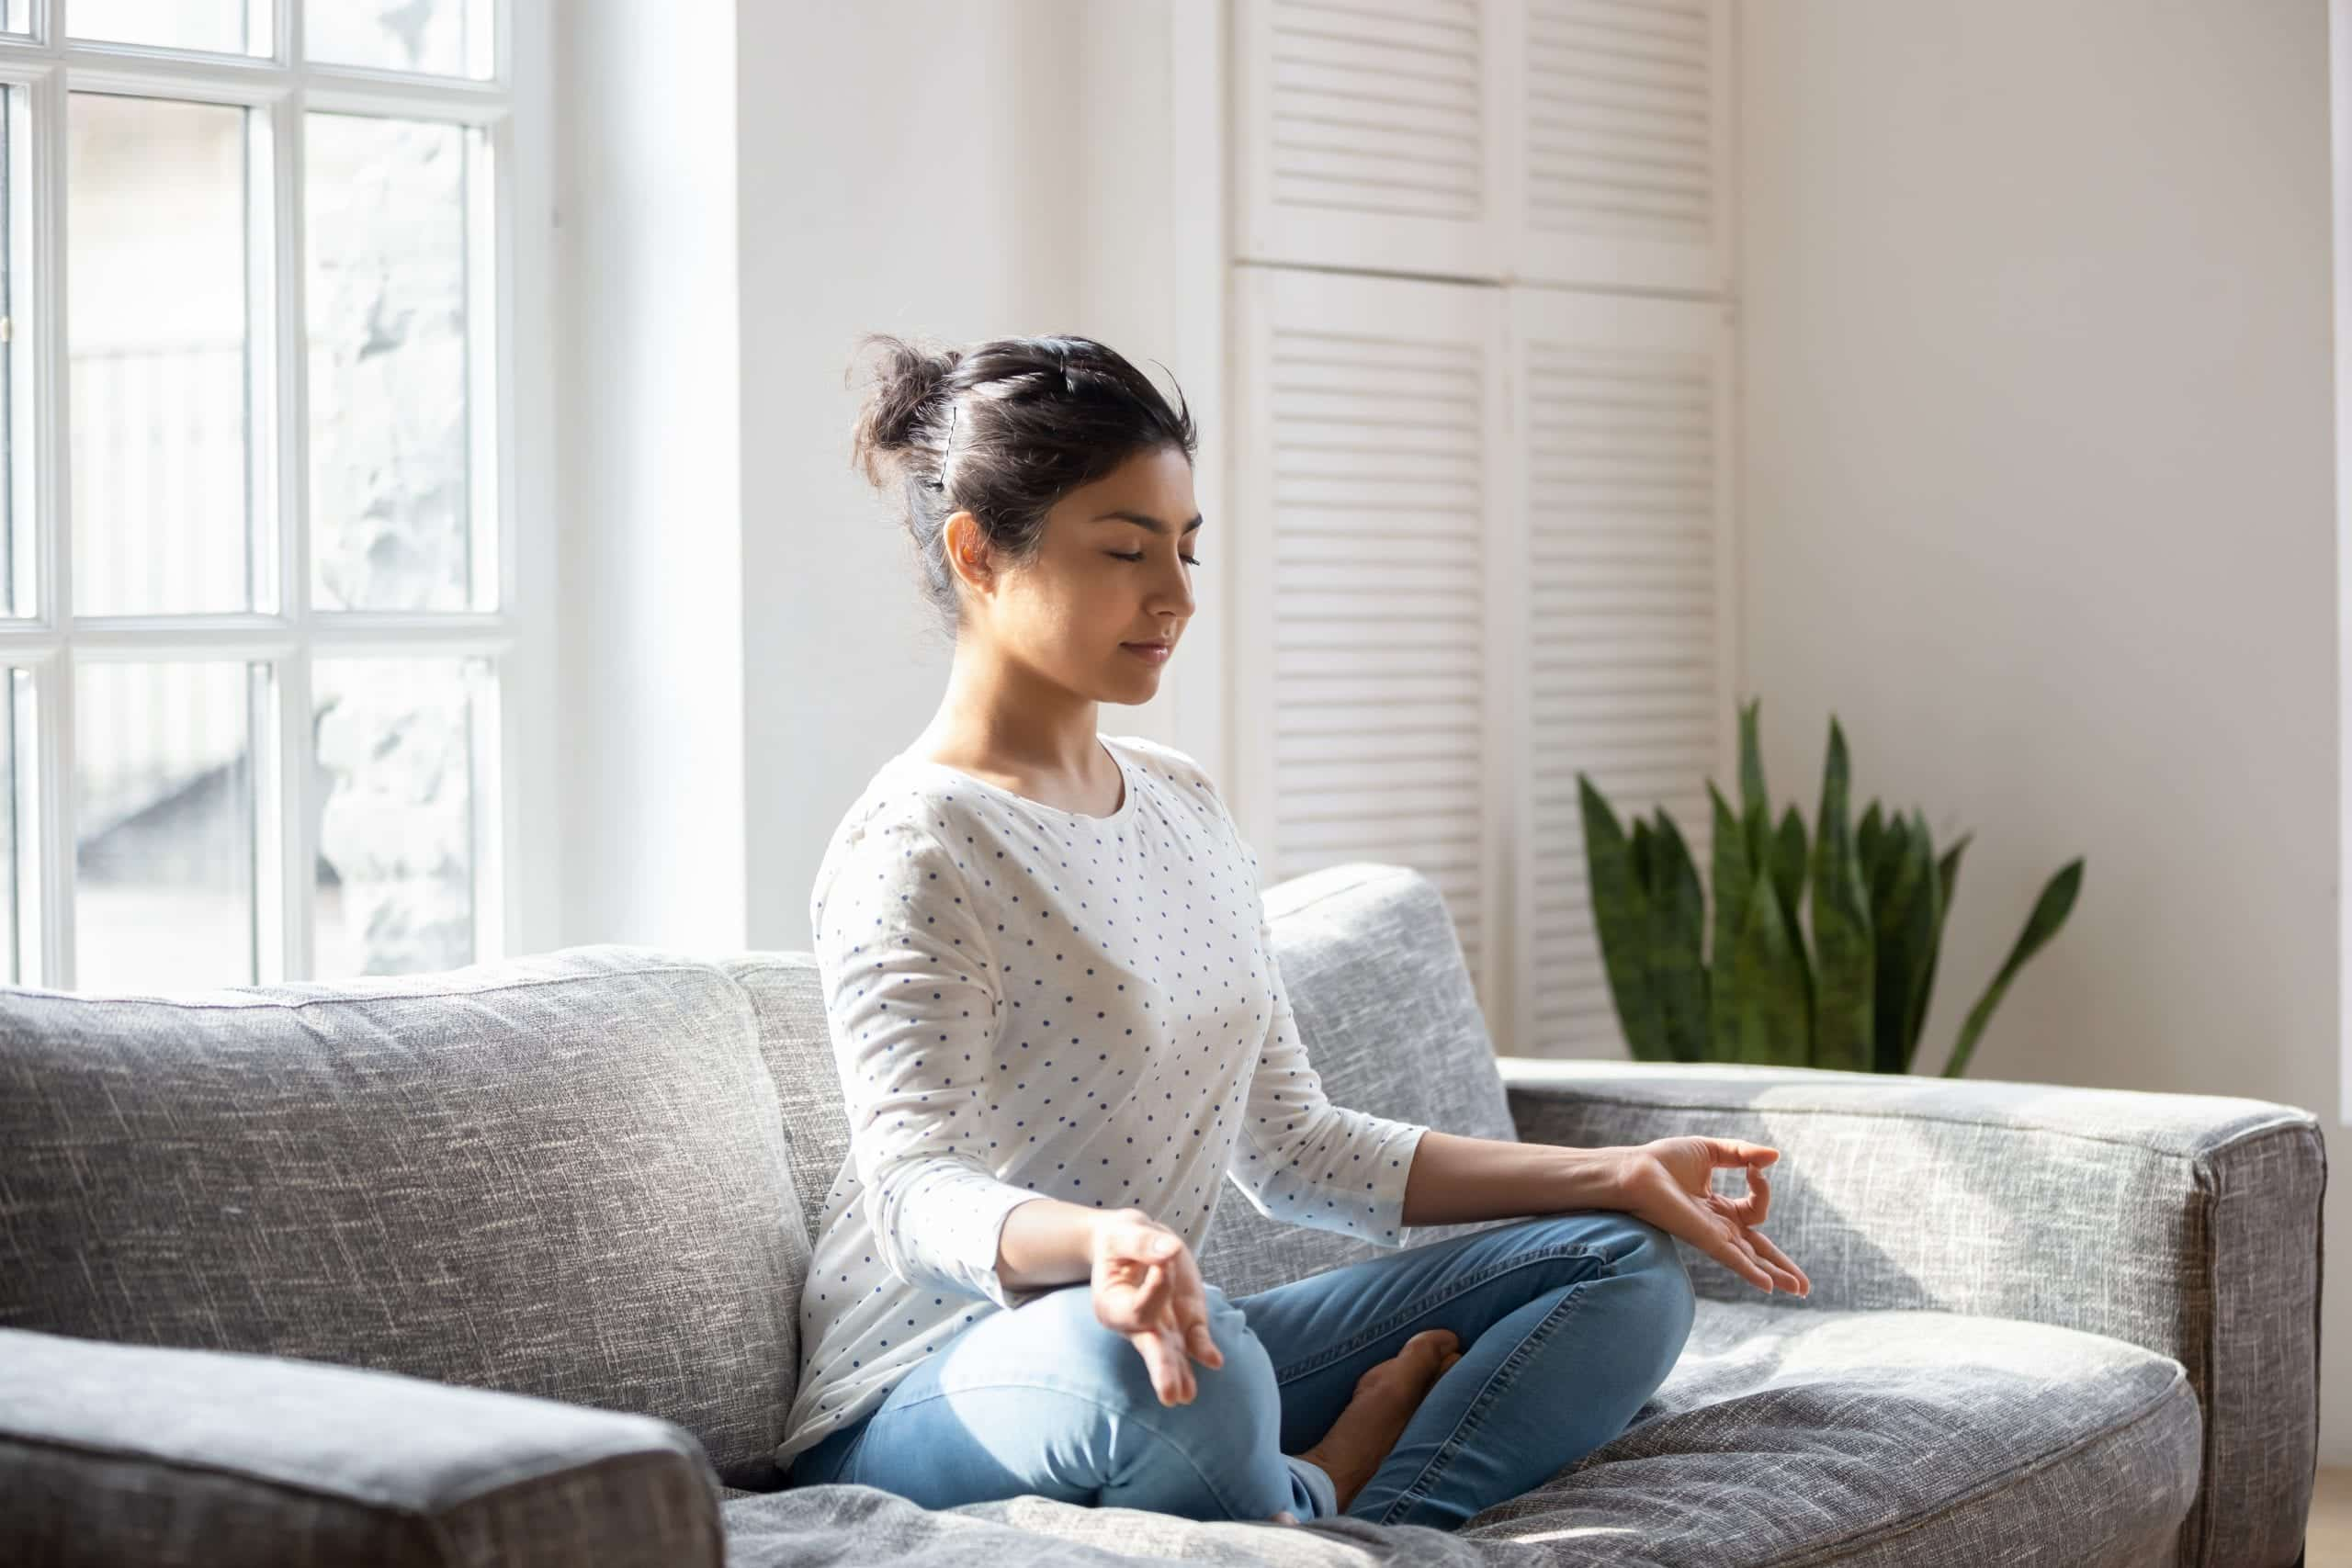 What are Different Formulas to Treat Anxiety?